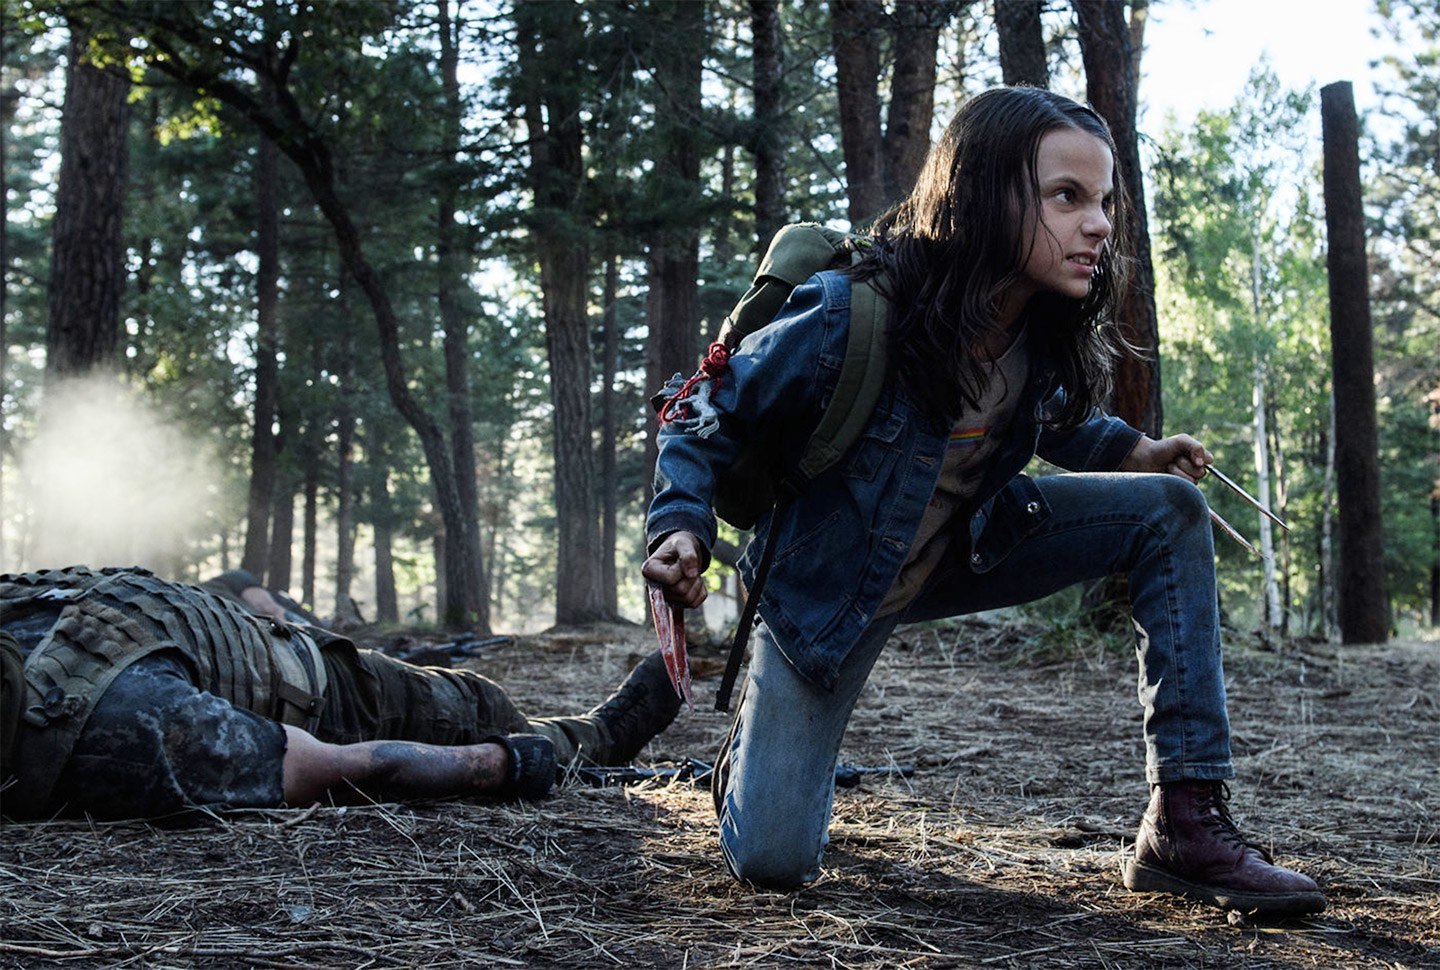 A Logan spinoff script is in the works for Dafne Keen's Laura screenshot